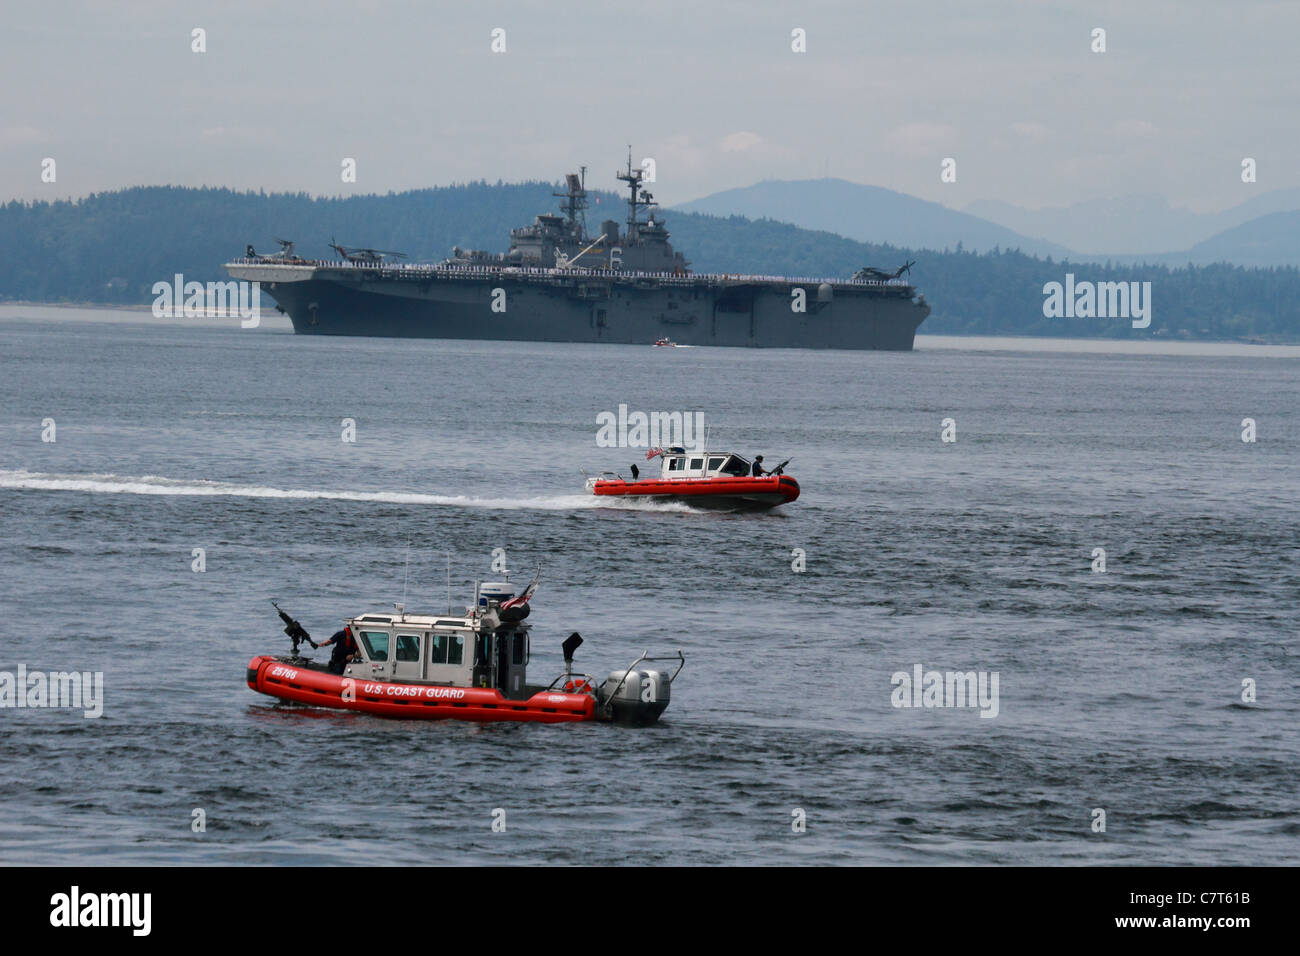 US Coast Guard patrol boats securing the way for the Amphibious Assault Ship the USS Bonhomme Richard LHD-6 to dock Stock Photo